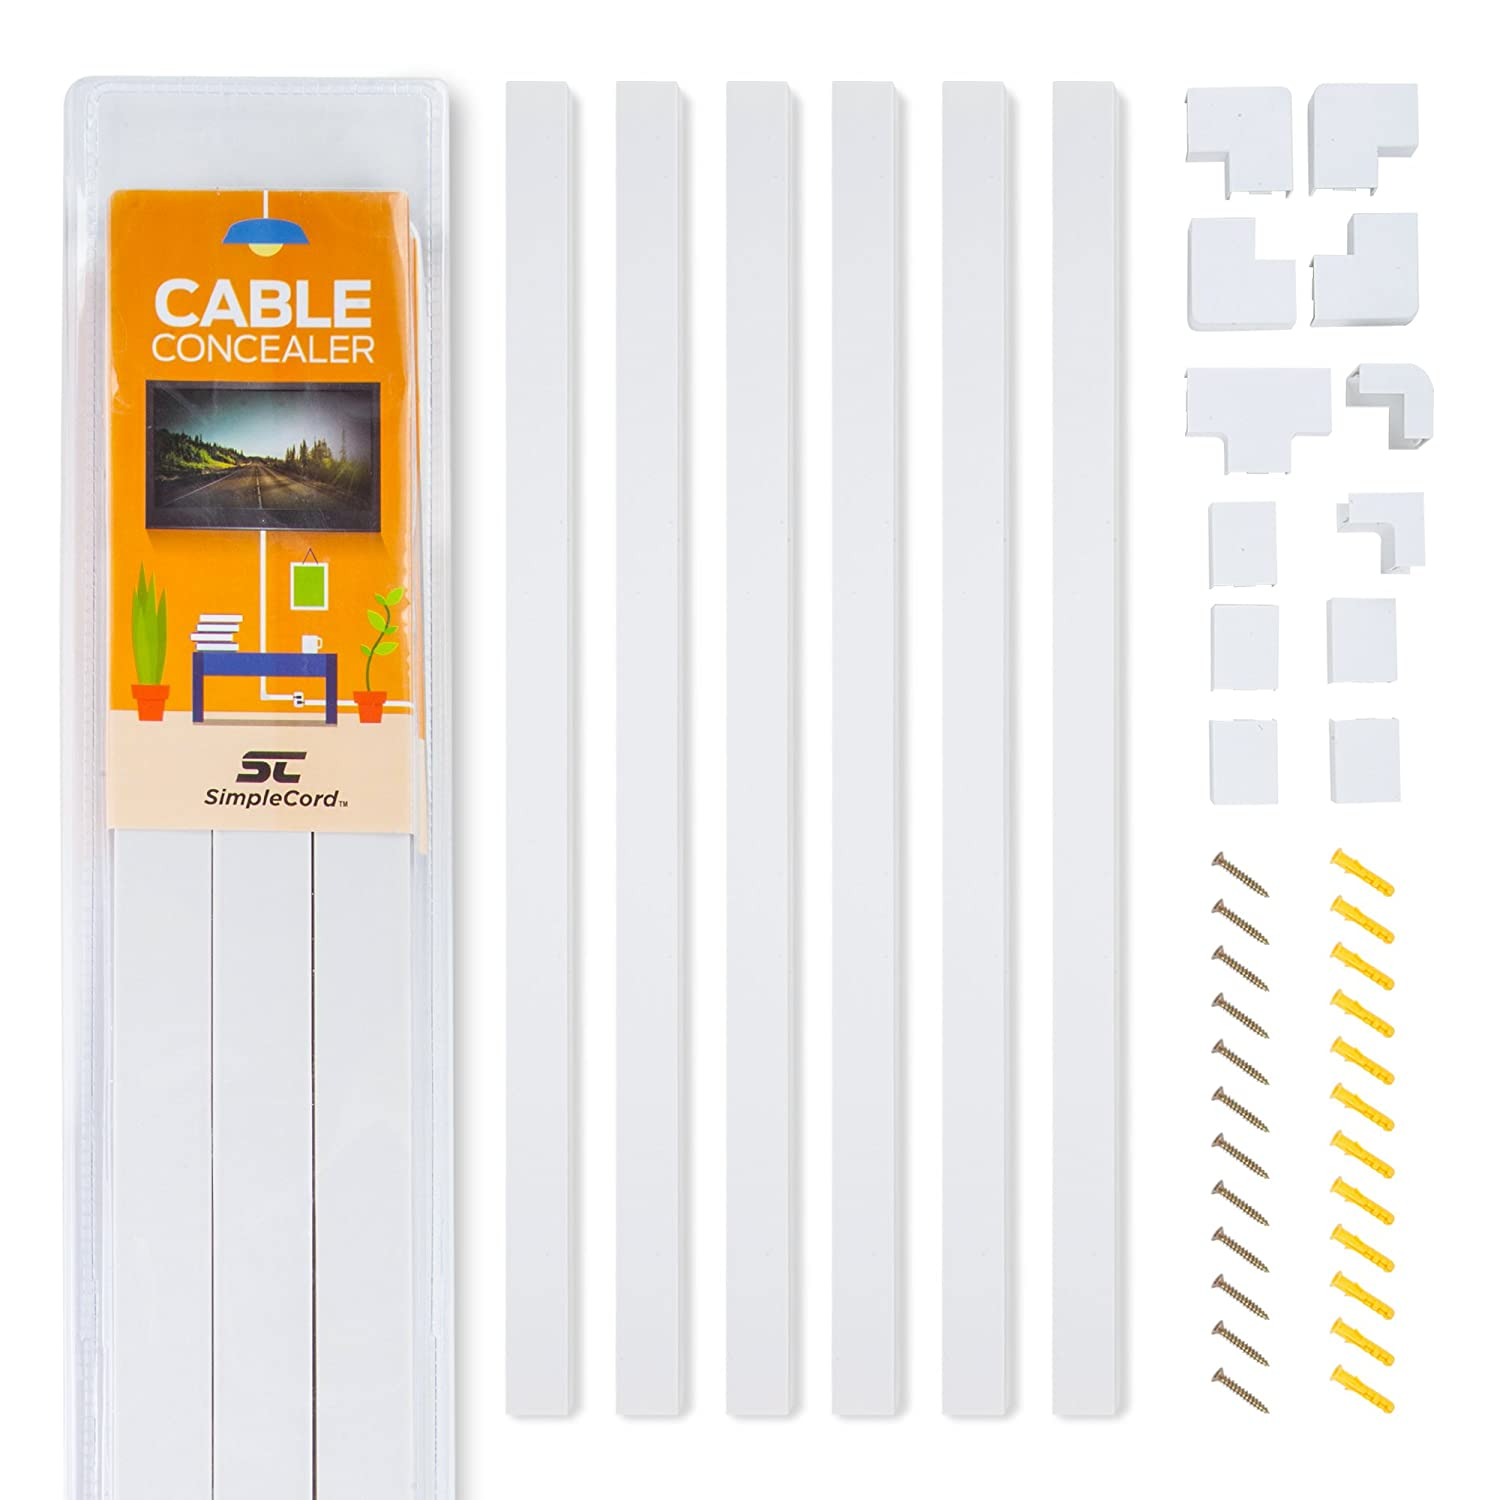 Cable Concealer On-Wall Cord Cover Raceway Kit - Cable Management System to Hide Cables, Cords, or Wires - Cord Organizer for TVs and Computers at Home or in The Office